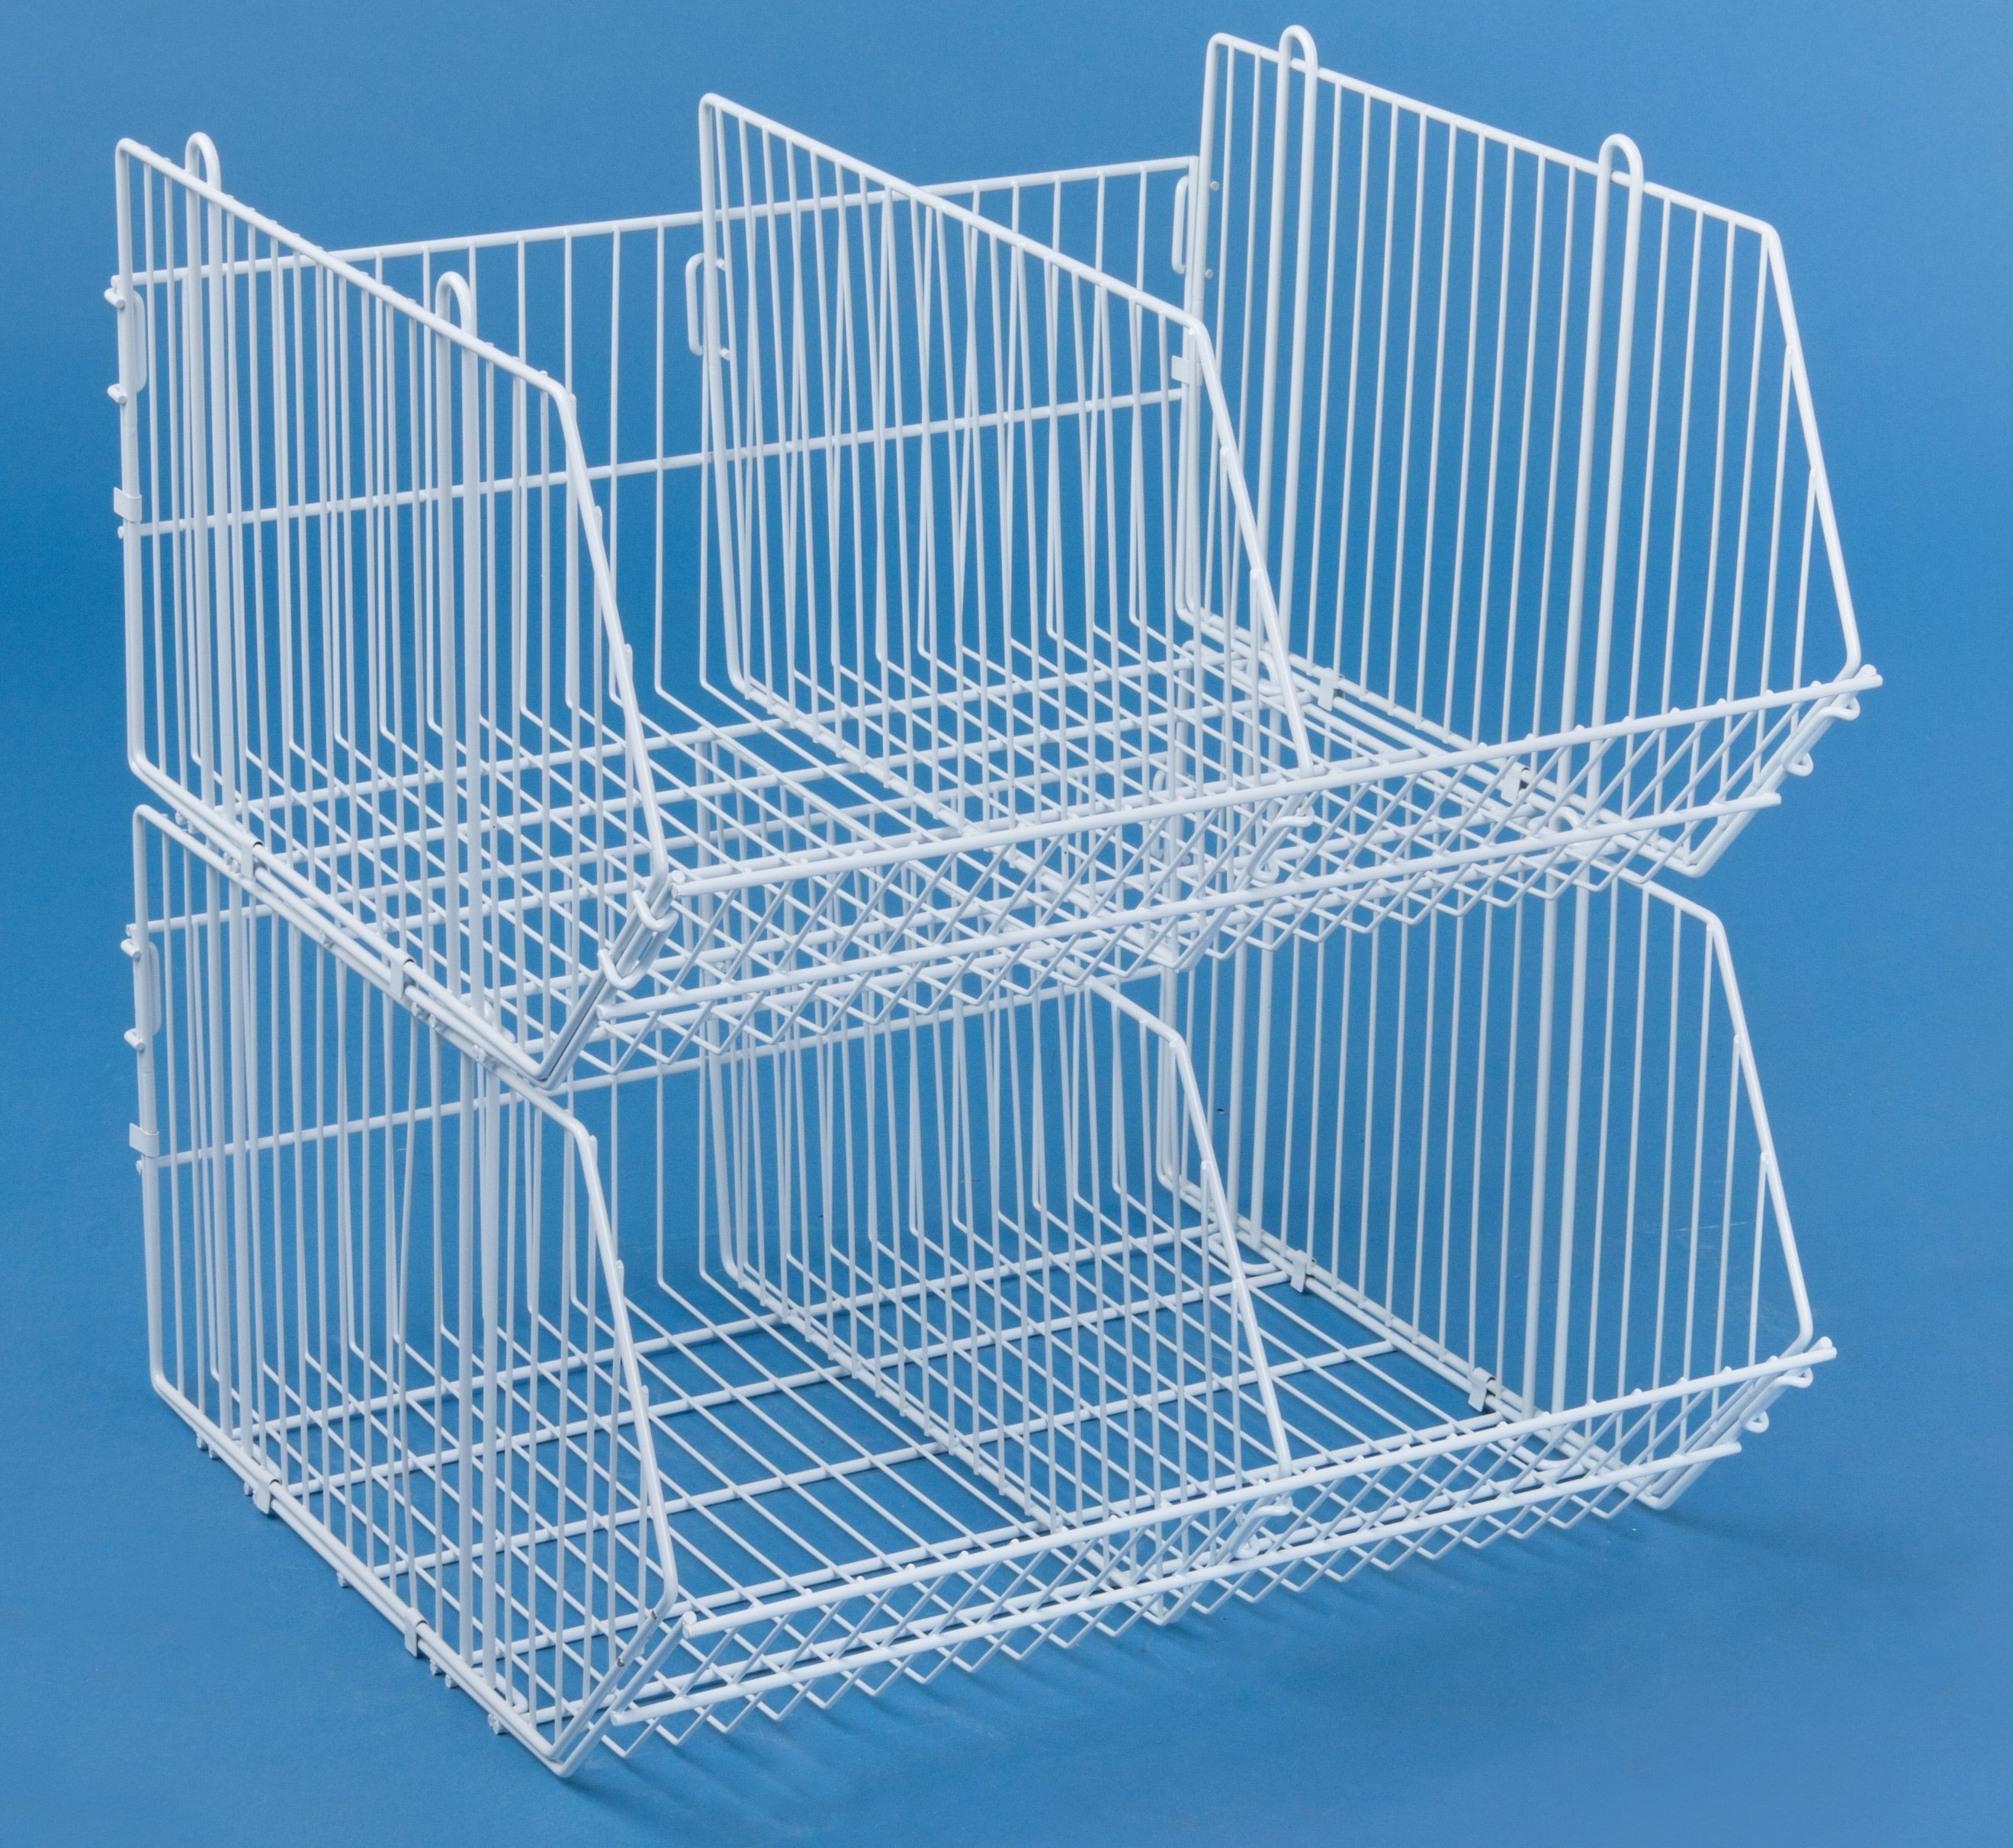 Tiered Wire Dump Bin w/ Removable Dividers, 2 Compartments - White ...